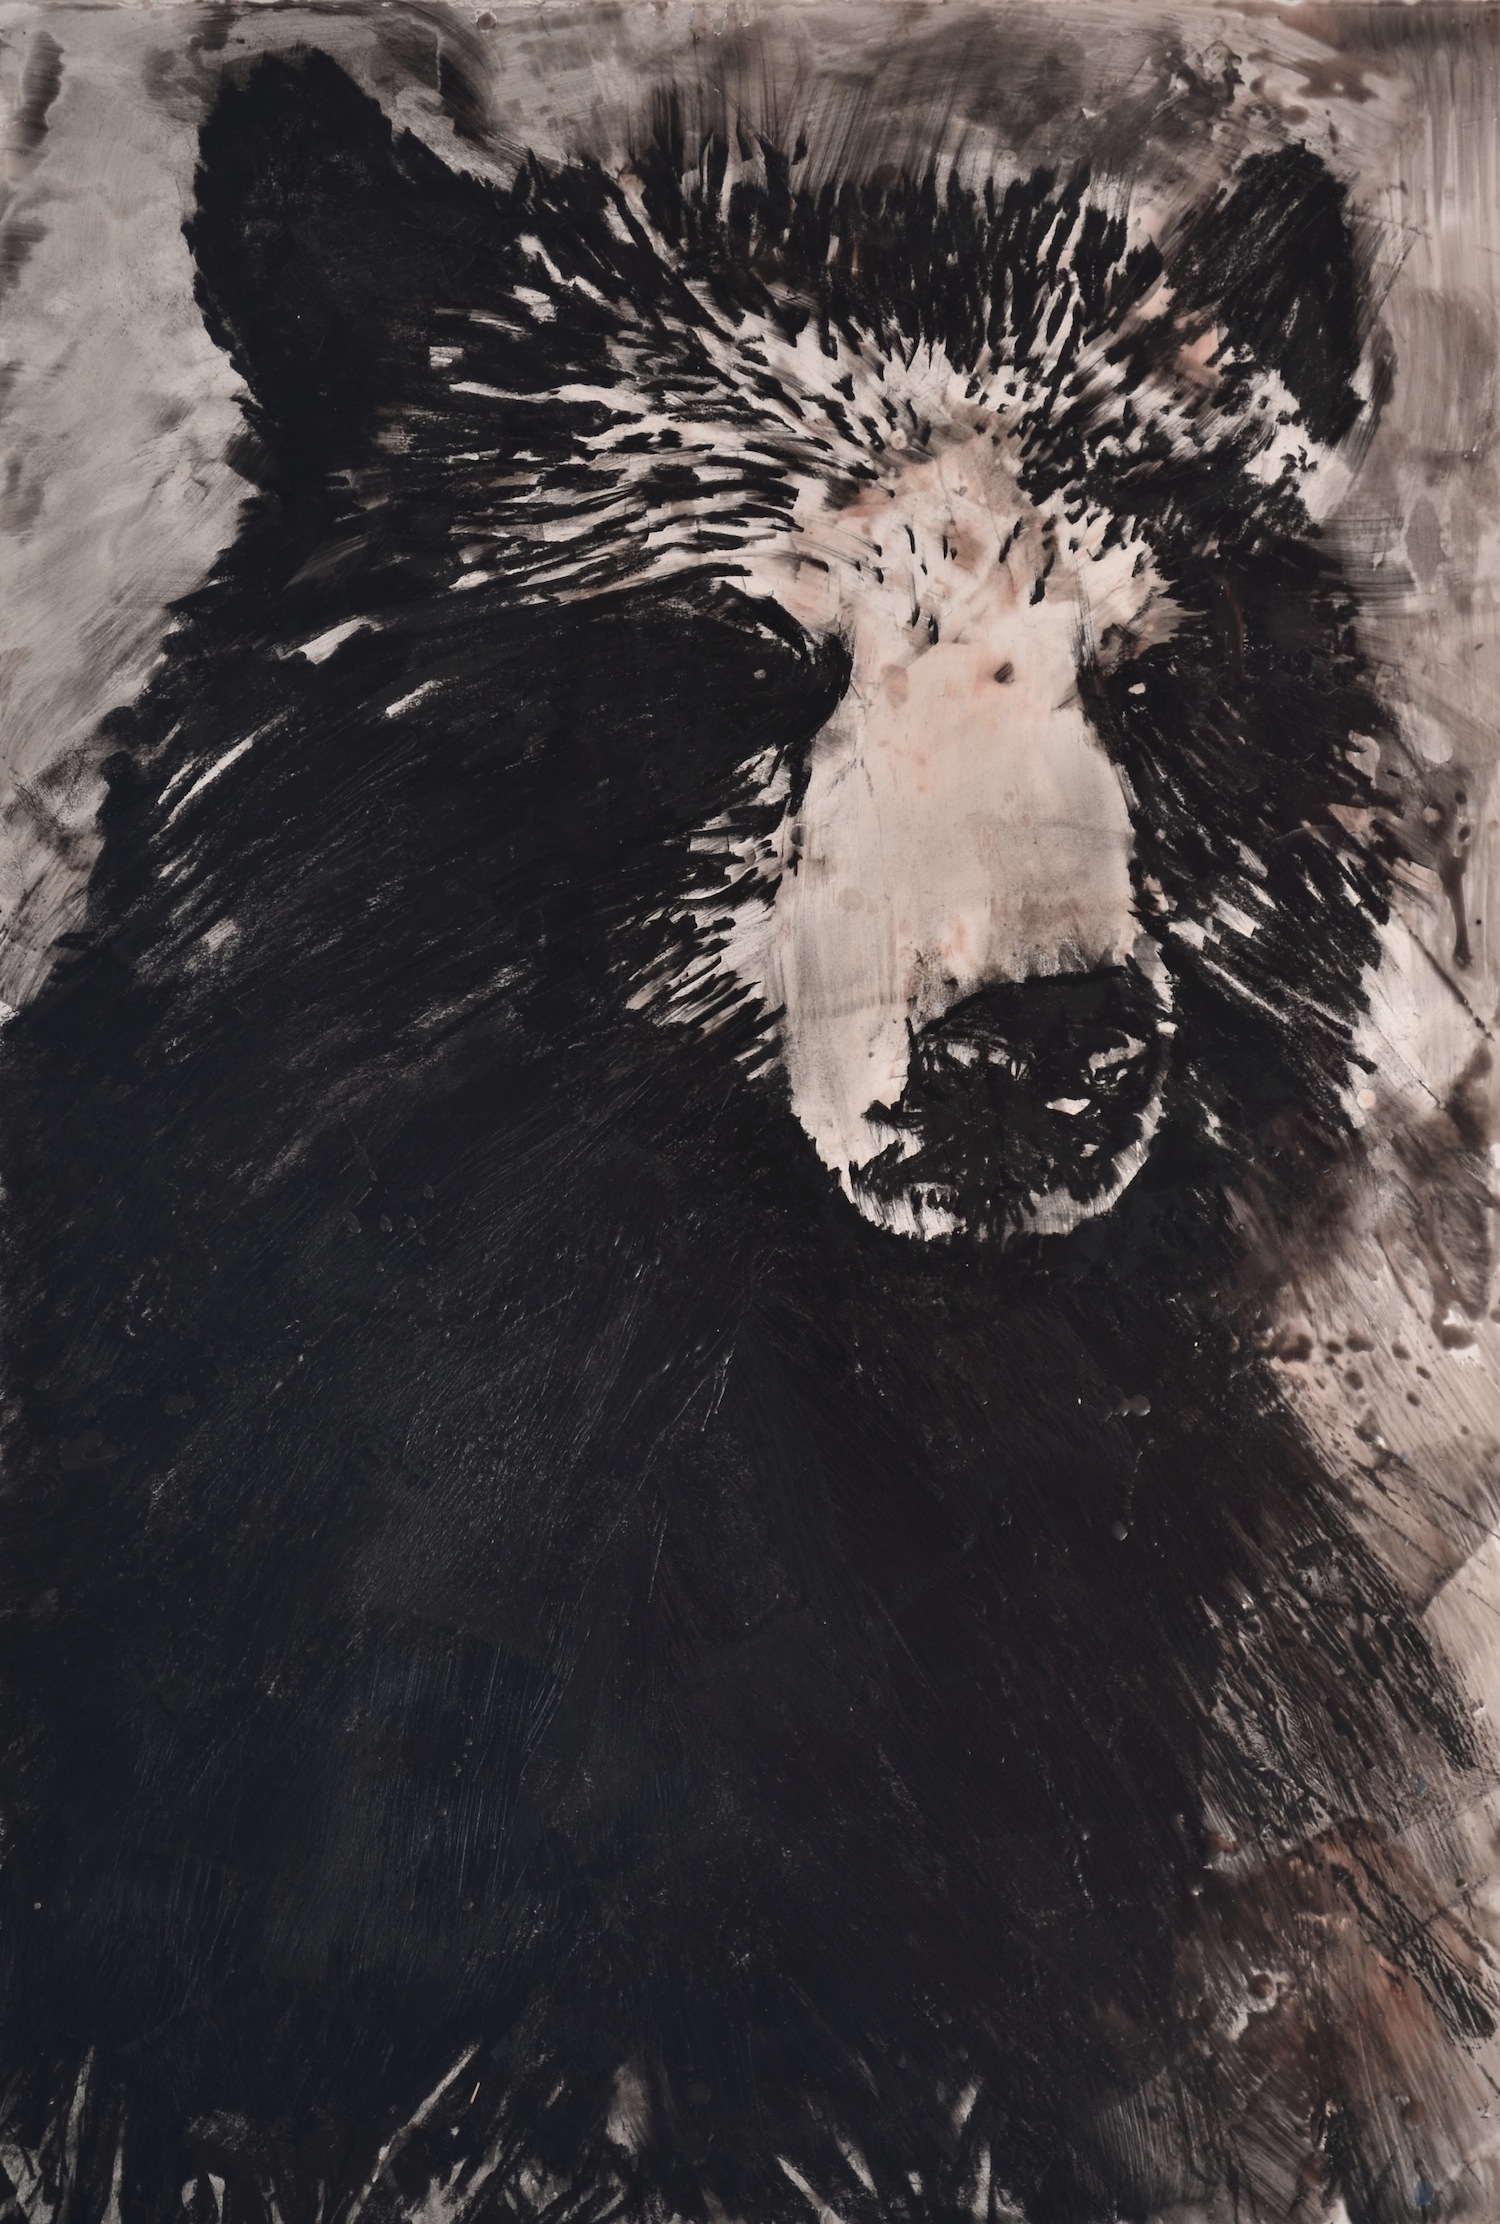 "Ragged Bear, 40"" x 30"", charcoal and microcrystalline wax on paper, 2013"